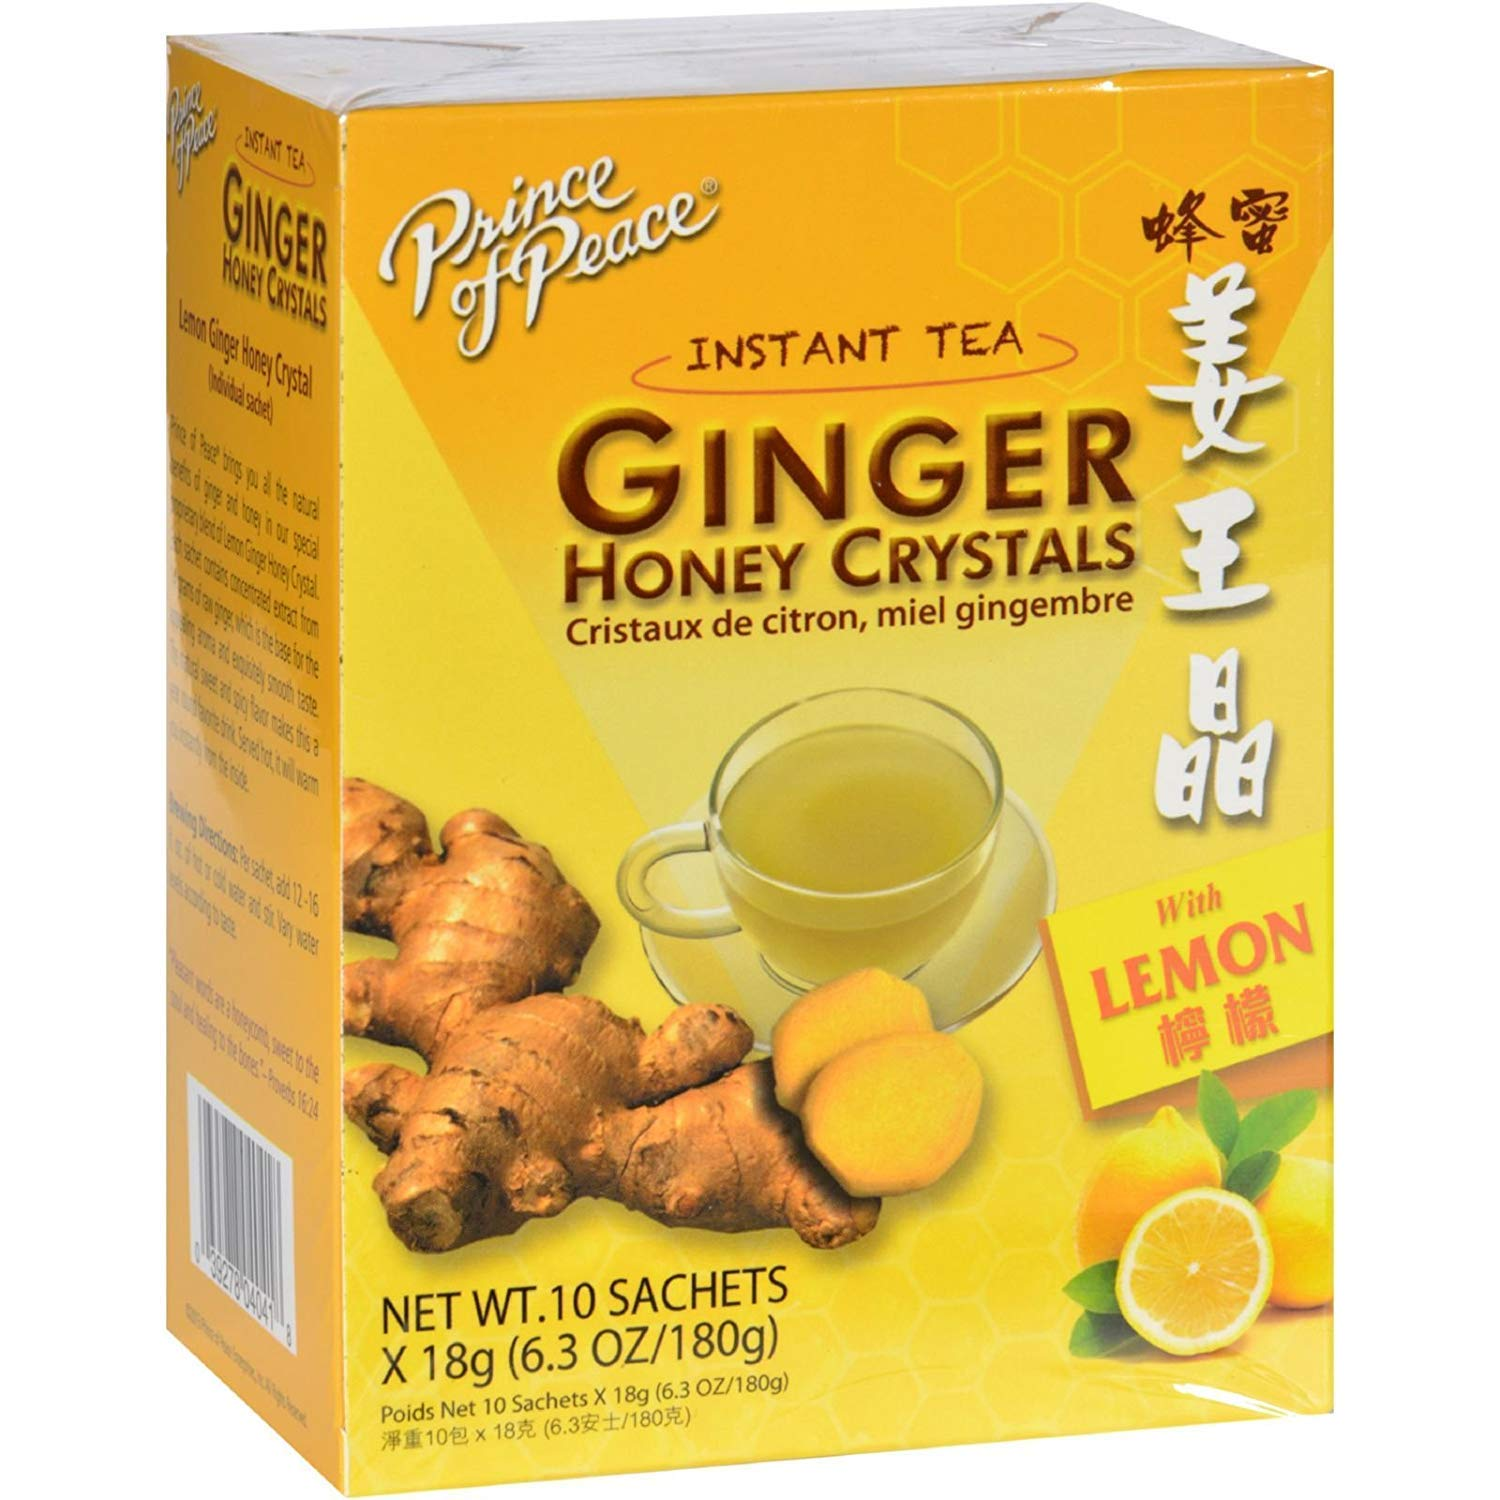 Prince of Peace Instant Lemon Ginger Honey Crystals, 10 Sachets – Instant Hot or Cold Beverage for Nausea Relief and Soothes Throat – Easy to Brew Ginger and Honey Crystals – Drink Like a Tea –